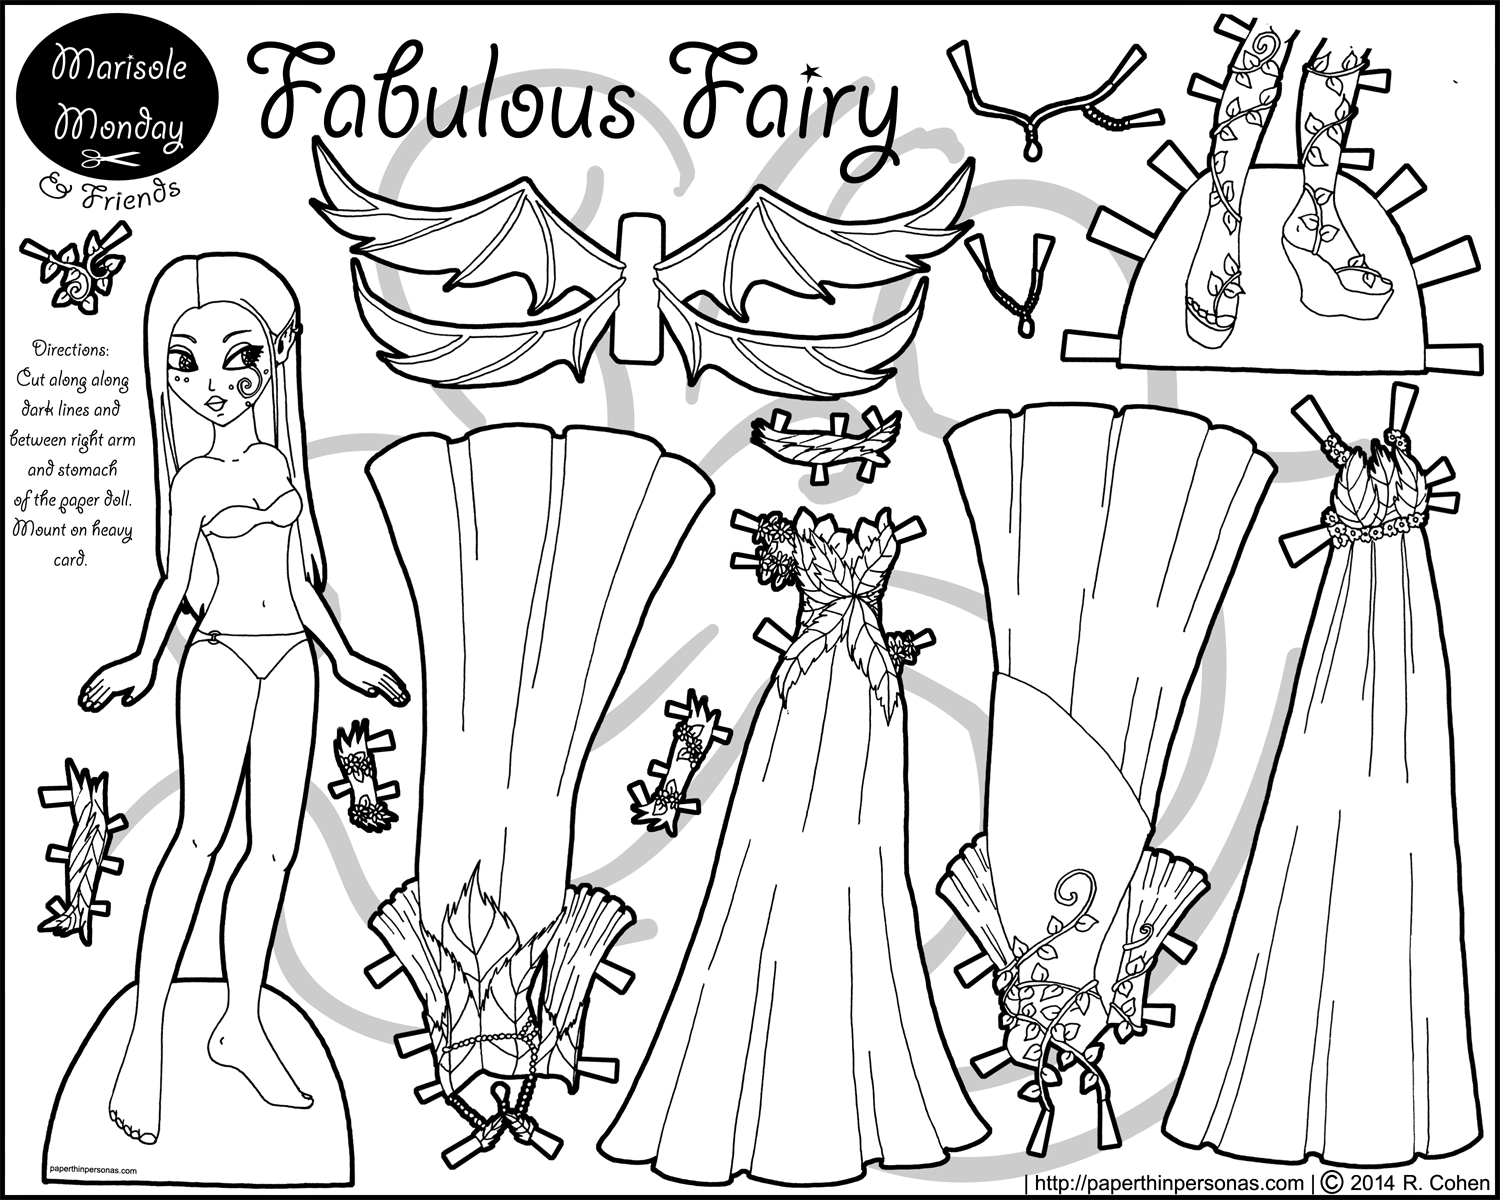 fabulous fairy paper doll coloring page - Paper Doll Coloring Pages